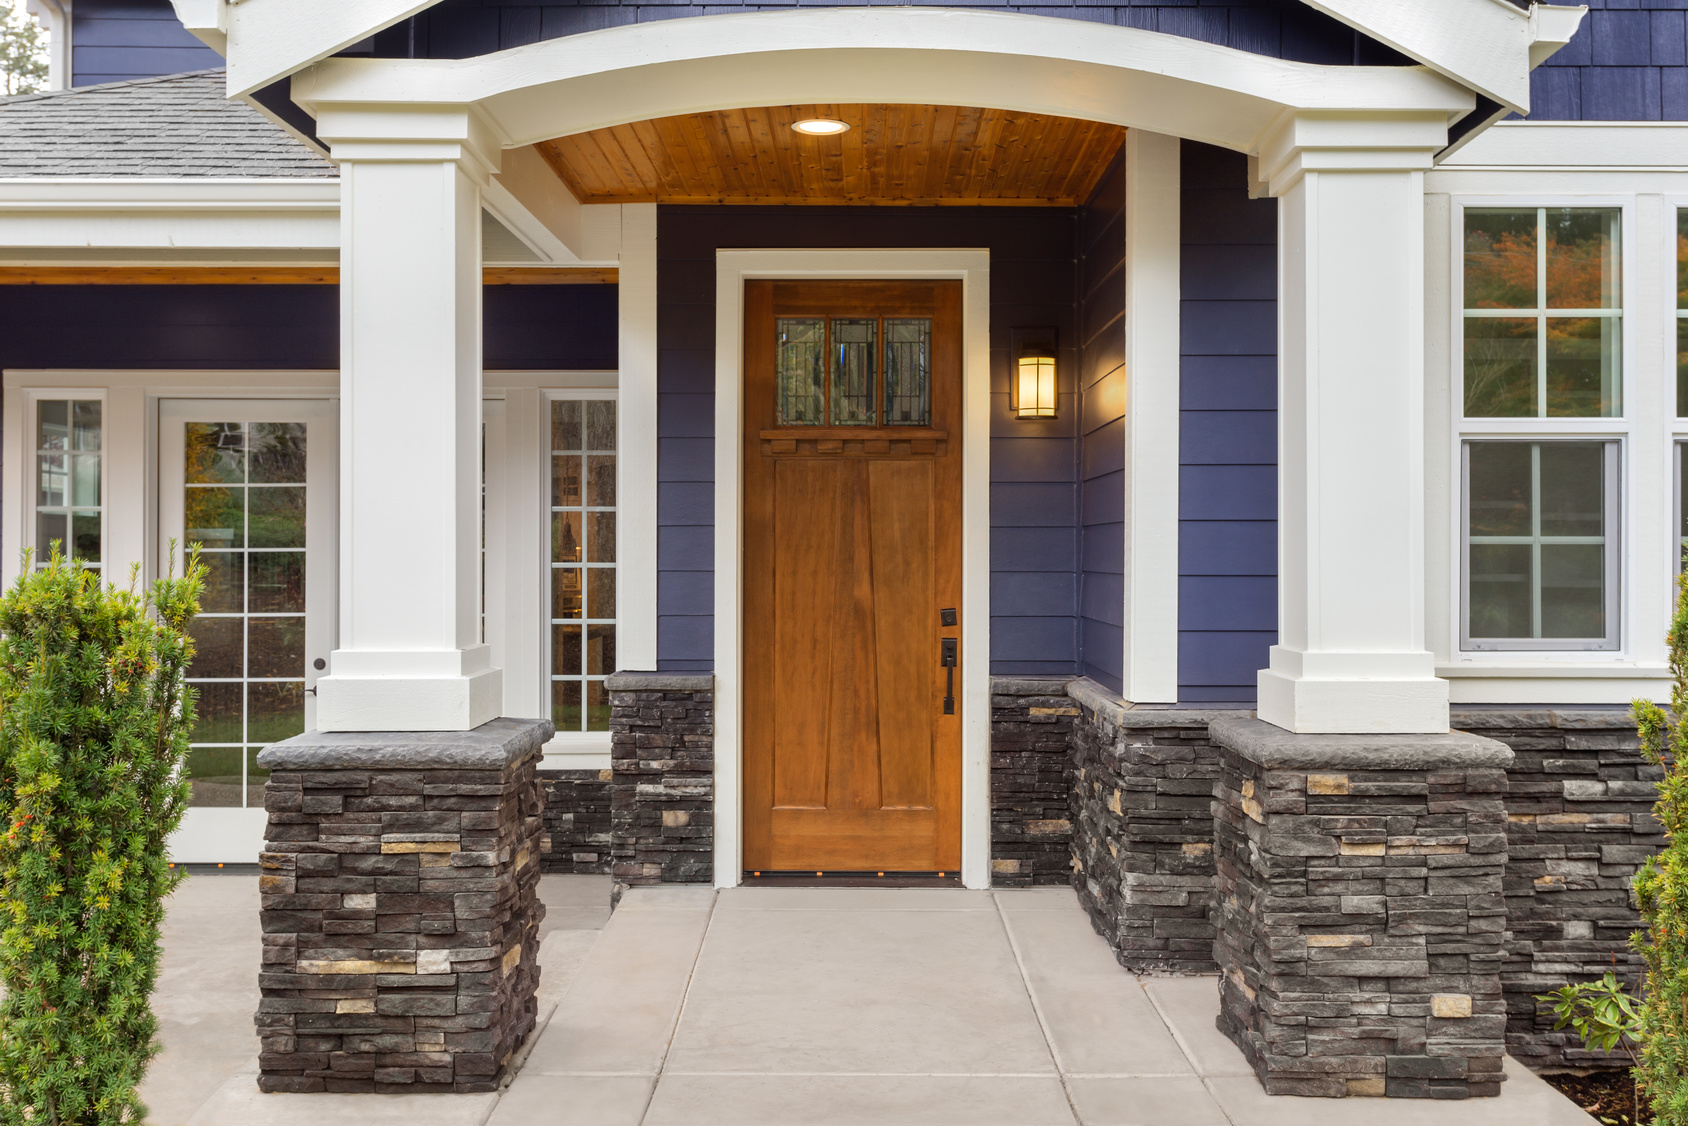 Why you should update the windows and exterior doors of your home